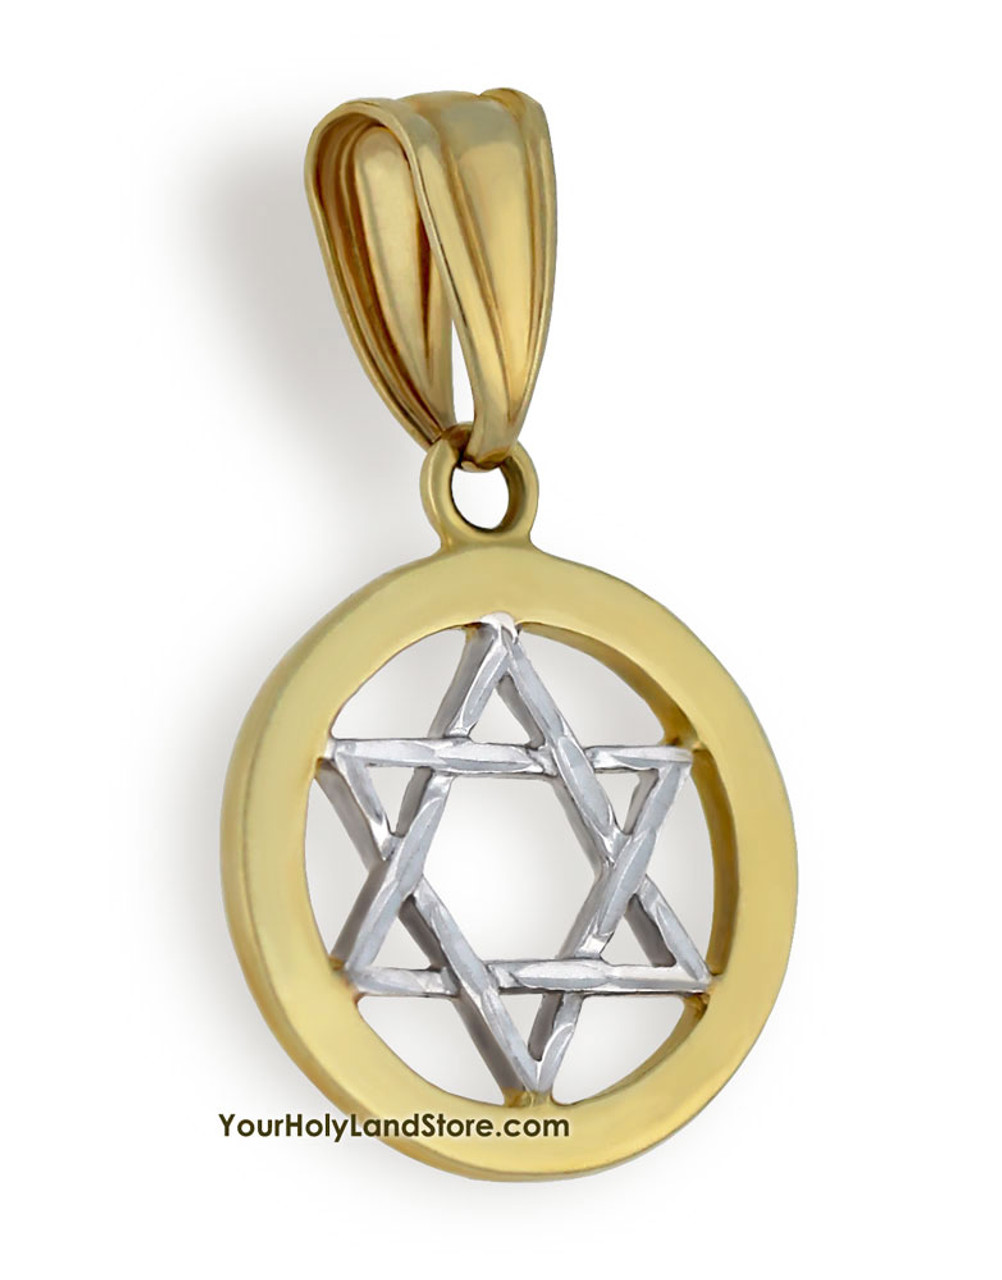 Buy 10k two tone gold star of david pendant free shipping 10k two tone gold star of david pendant aloadofball Images